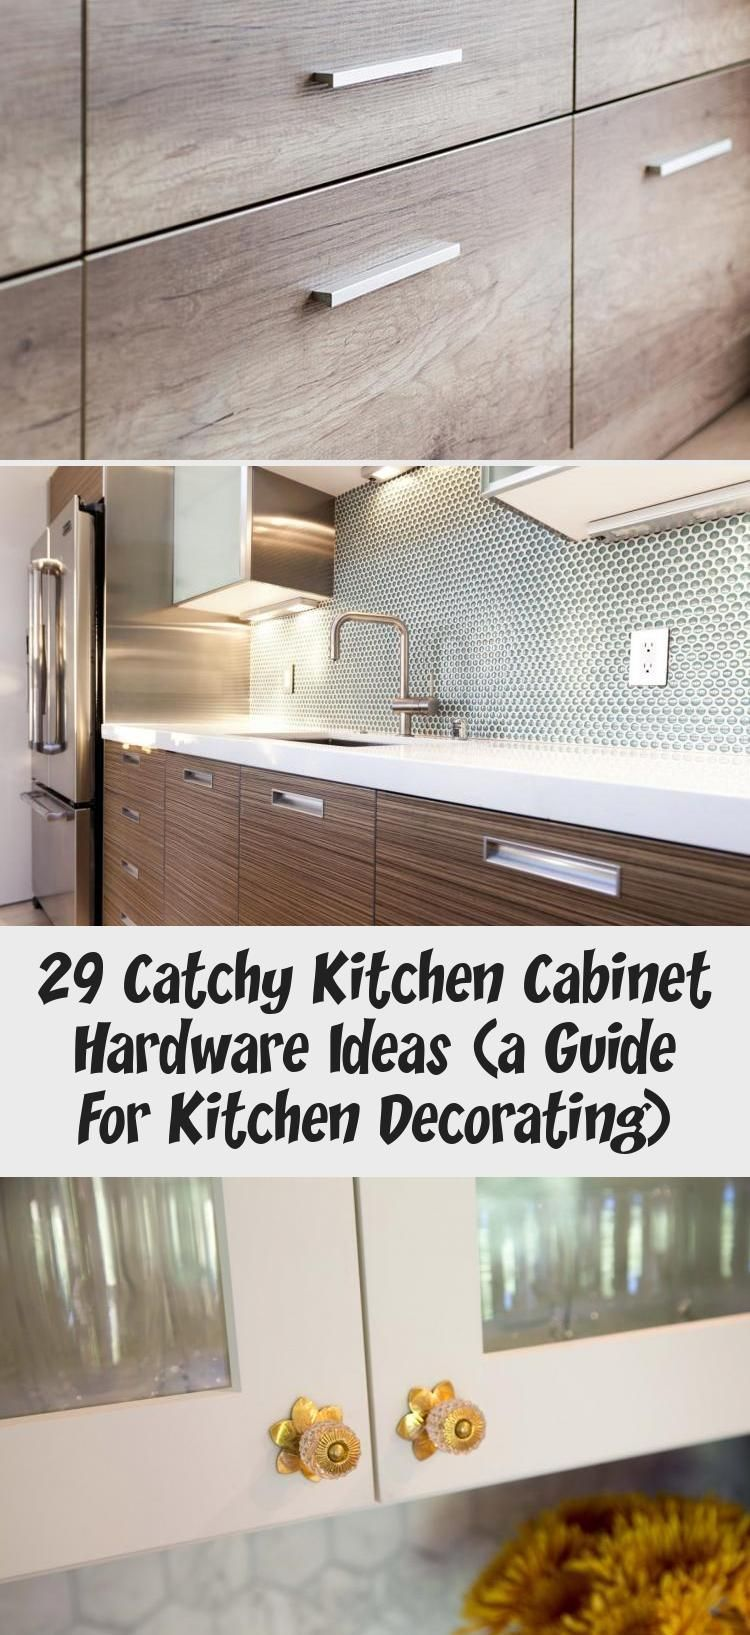 29 Catchy Kitchen Cabinet Hardware Ideas a Guide For Kitchen Decorating  Kitccabinet